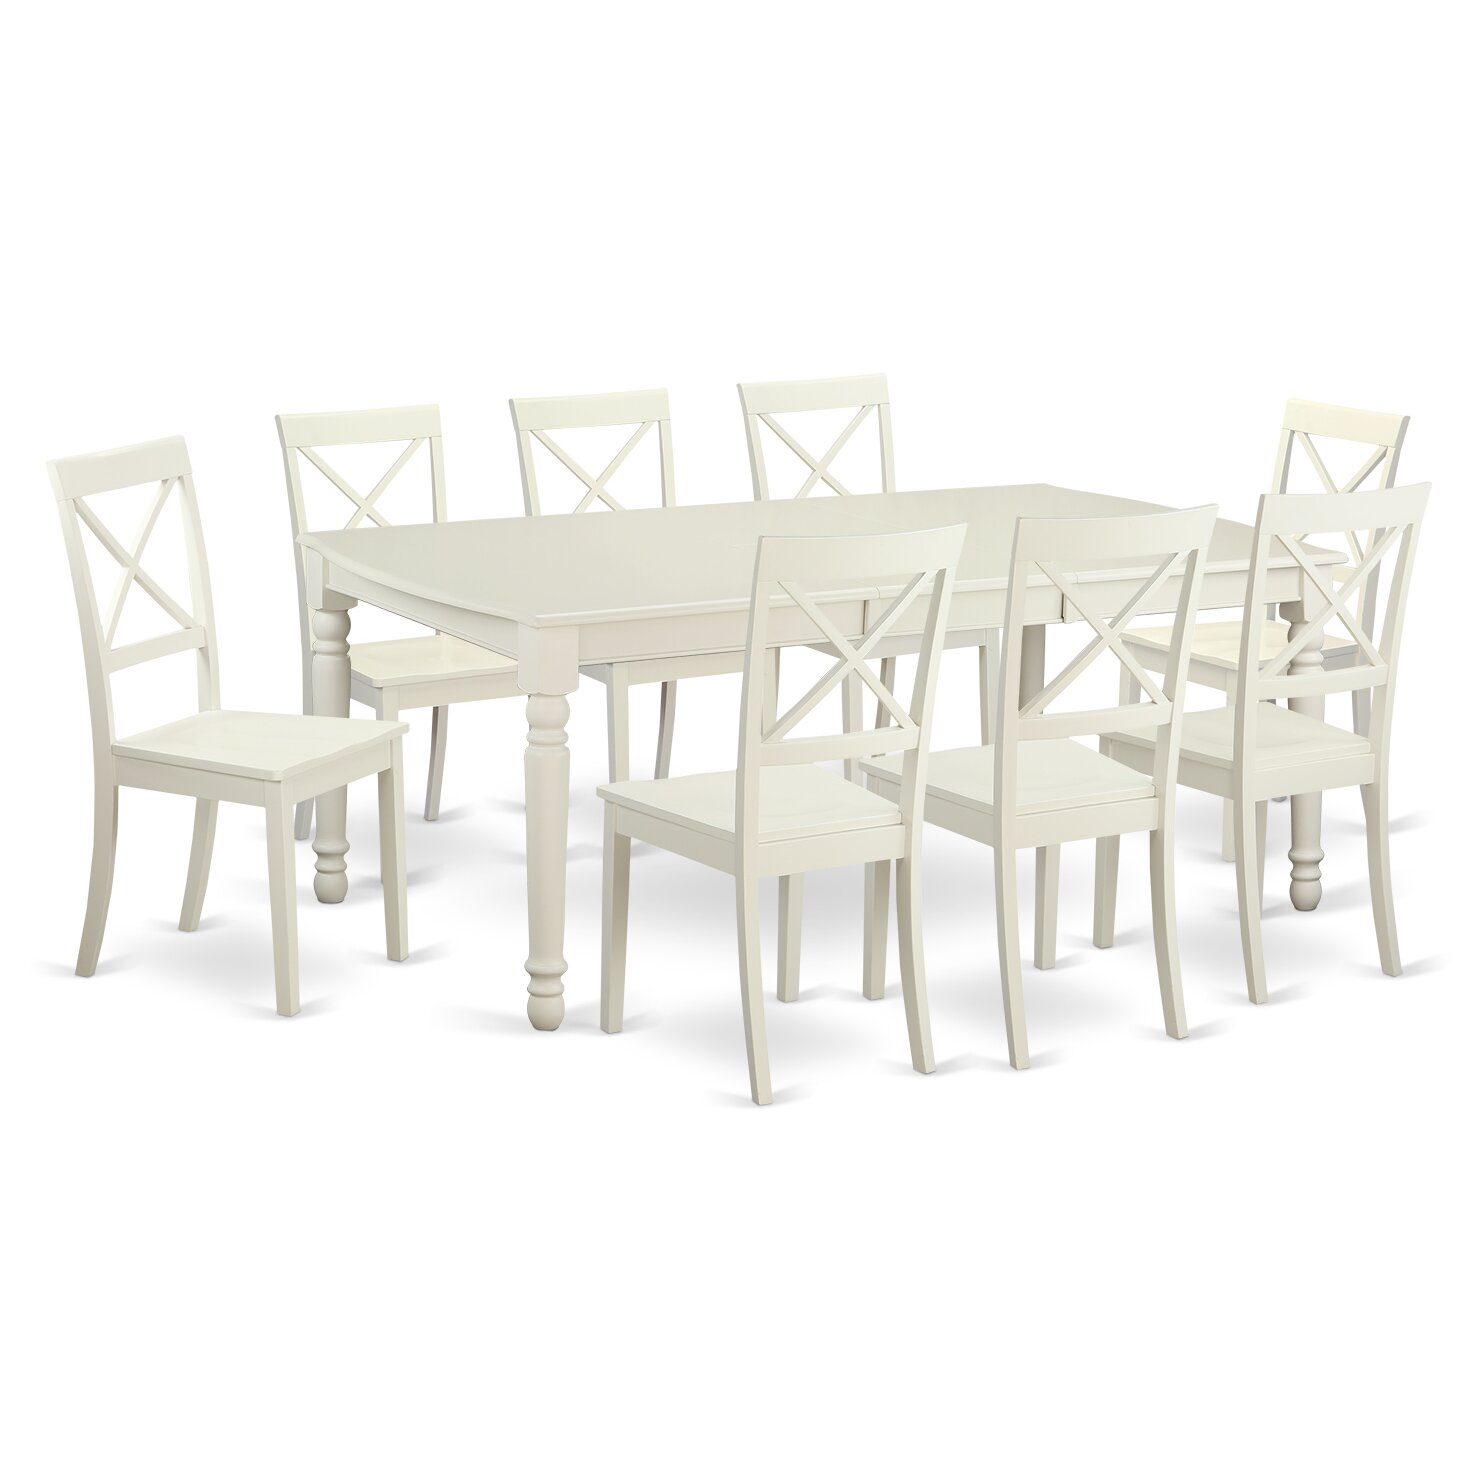 9 Piece Dining Table Set For 8 Dining Room Table With 8: East West Dover 9 Piece Dining Set & Reviews